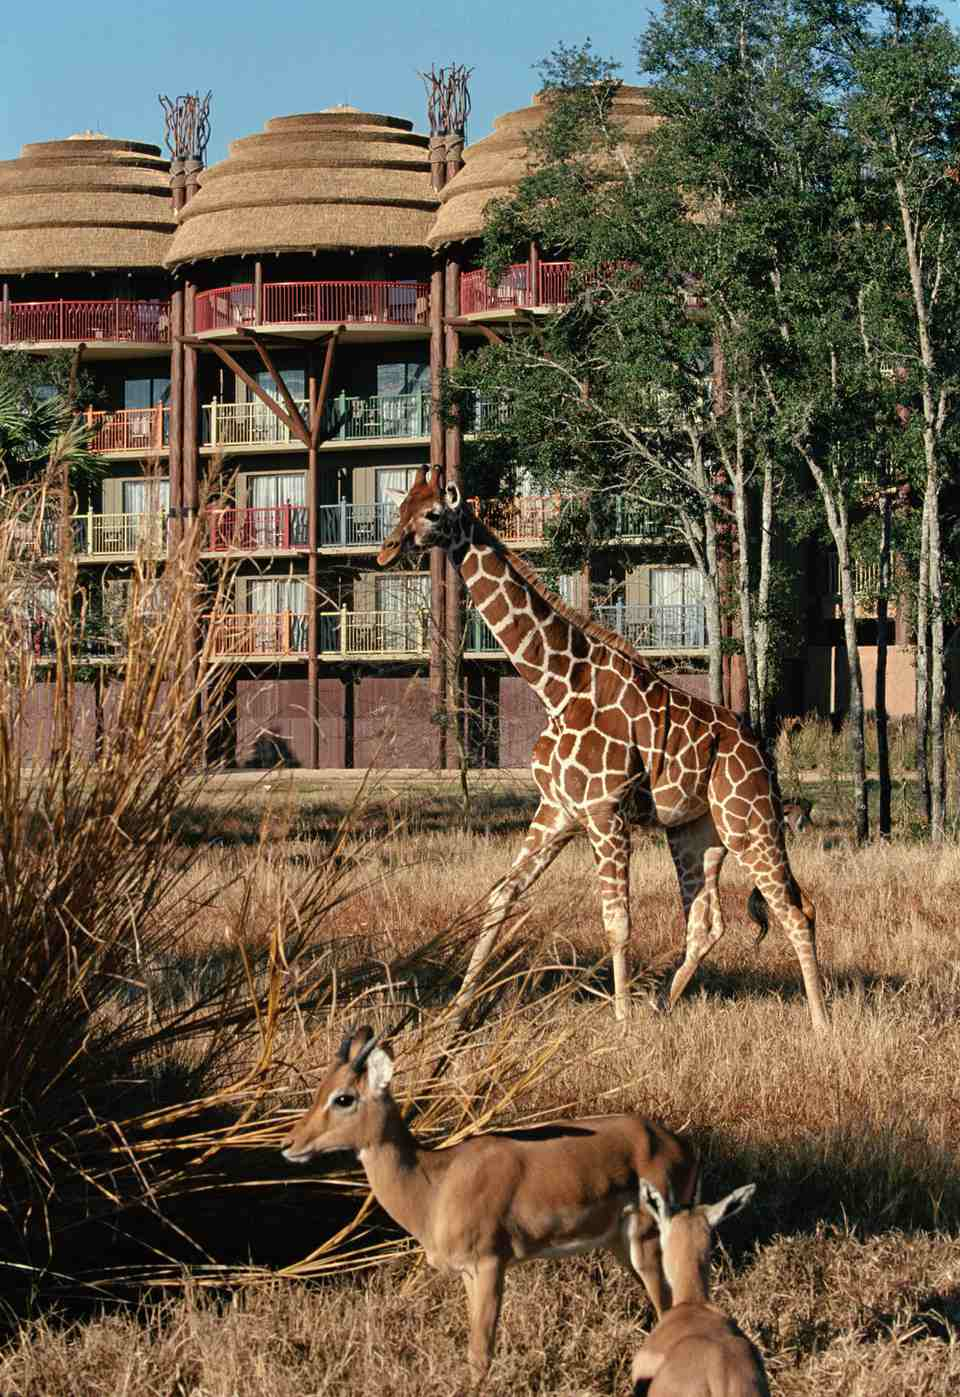 Giraffe and other exotic animals roaming savanah at Disney's Animal Kingdom Lodge